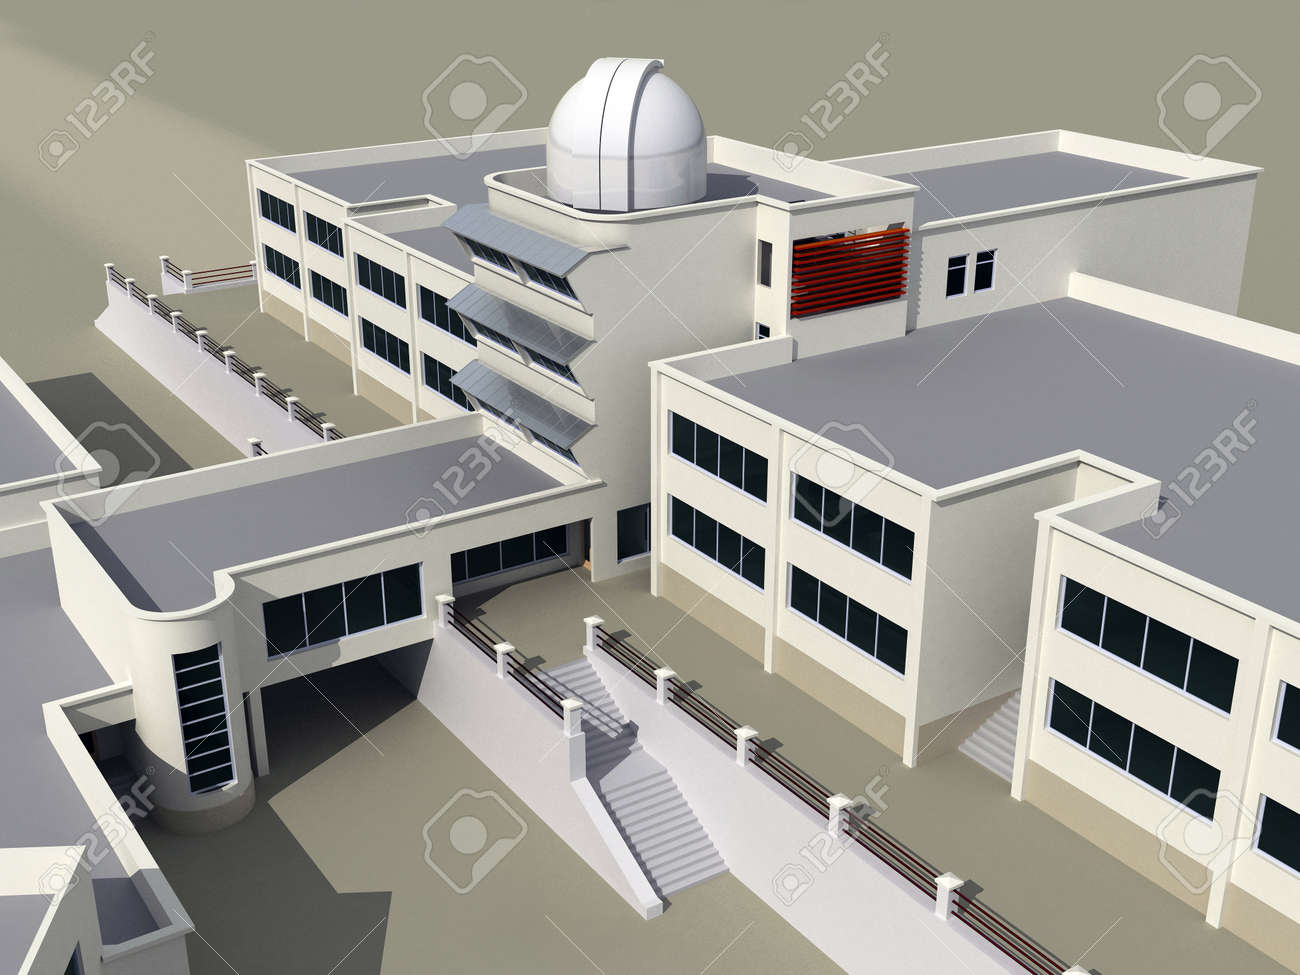 Plan Architecte 3d Architecture 3d Sketch Of The School Building With An Observatory